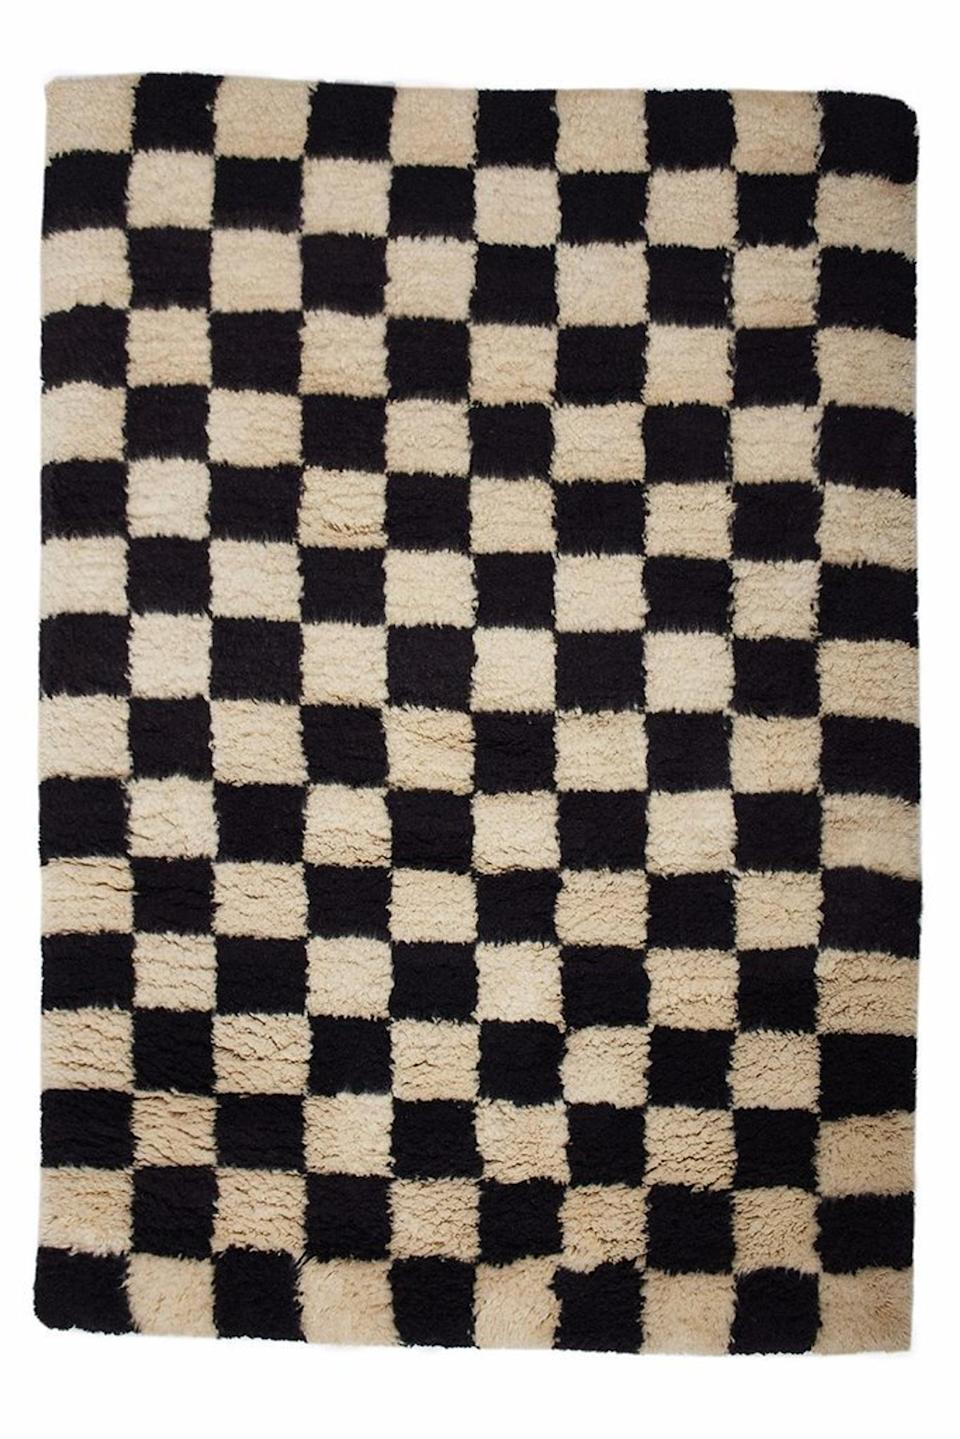 <p><span>Moroccan Checkered Runner Rug</span> ($185 and up, originally $205 and up)</p>